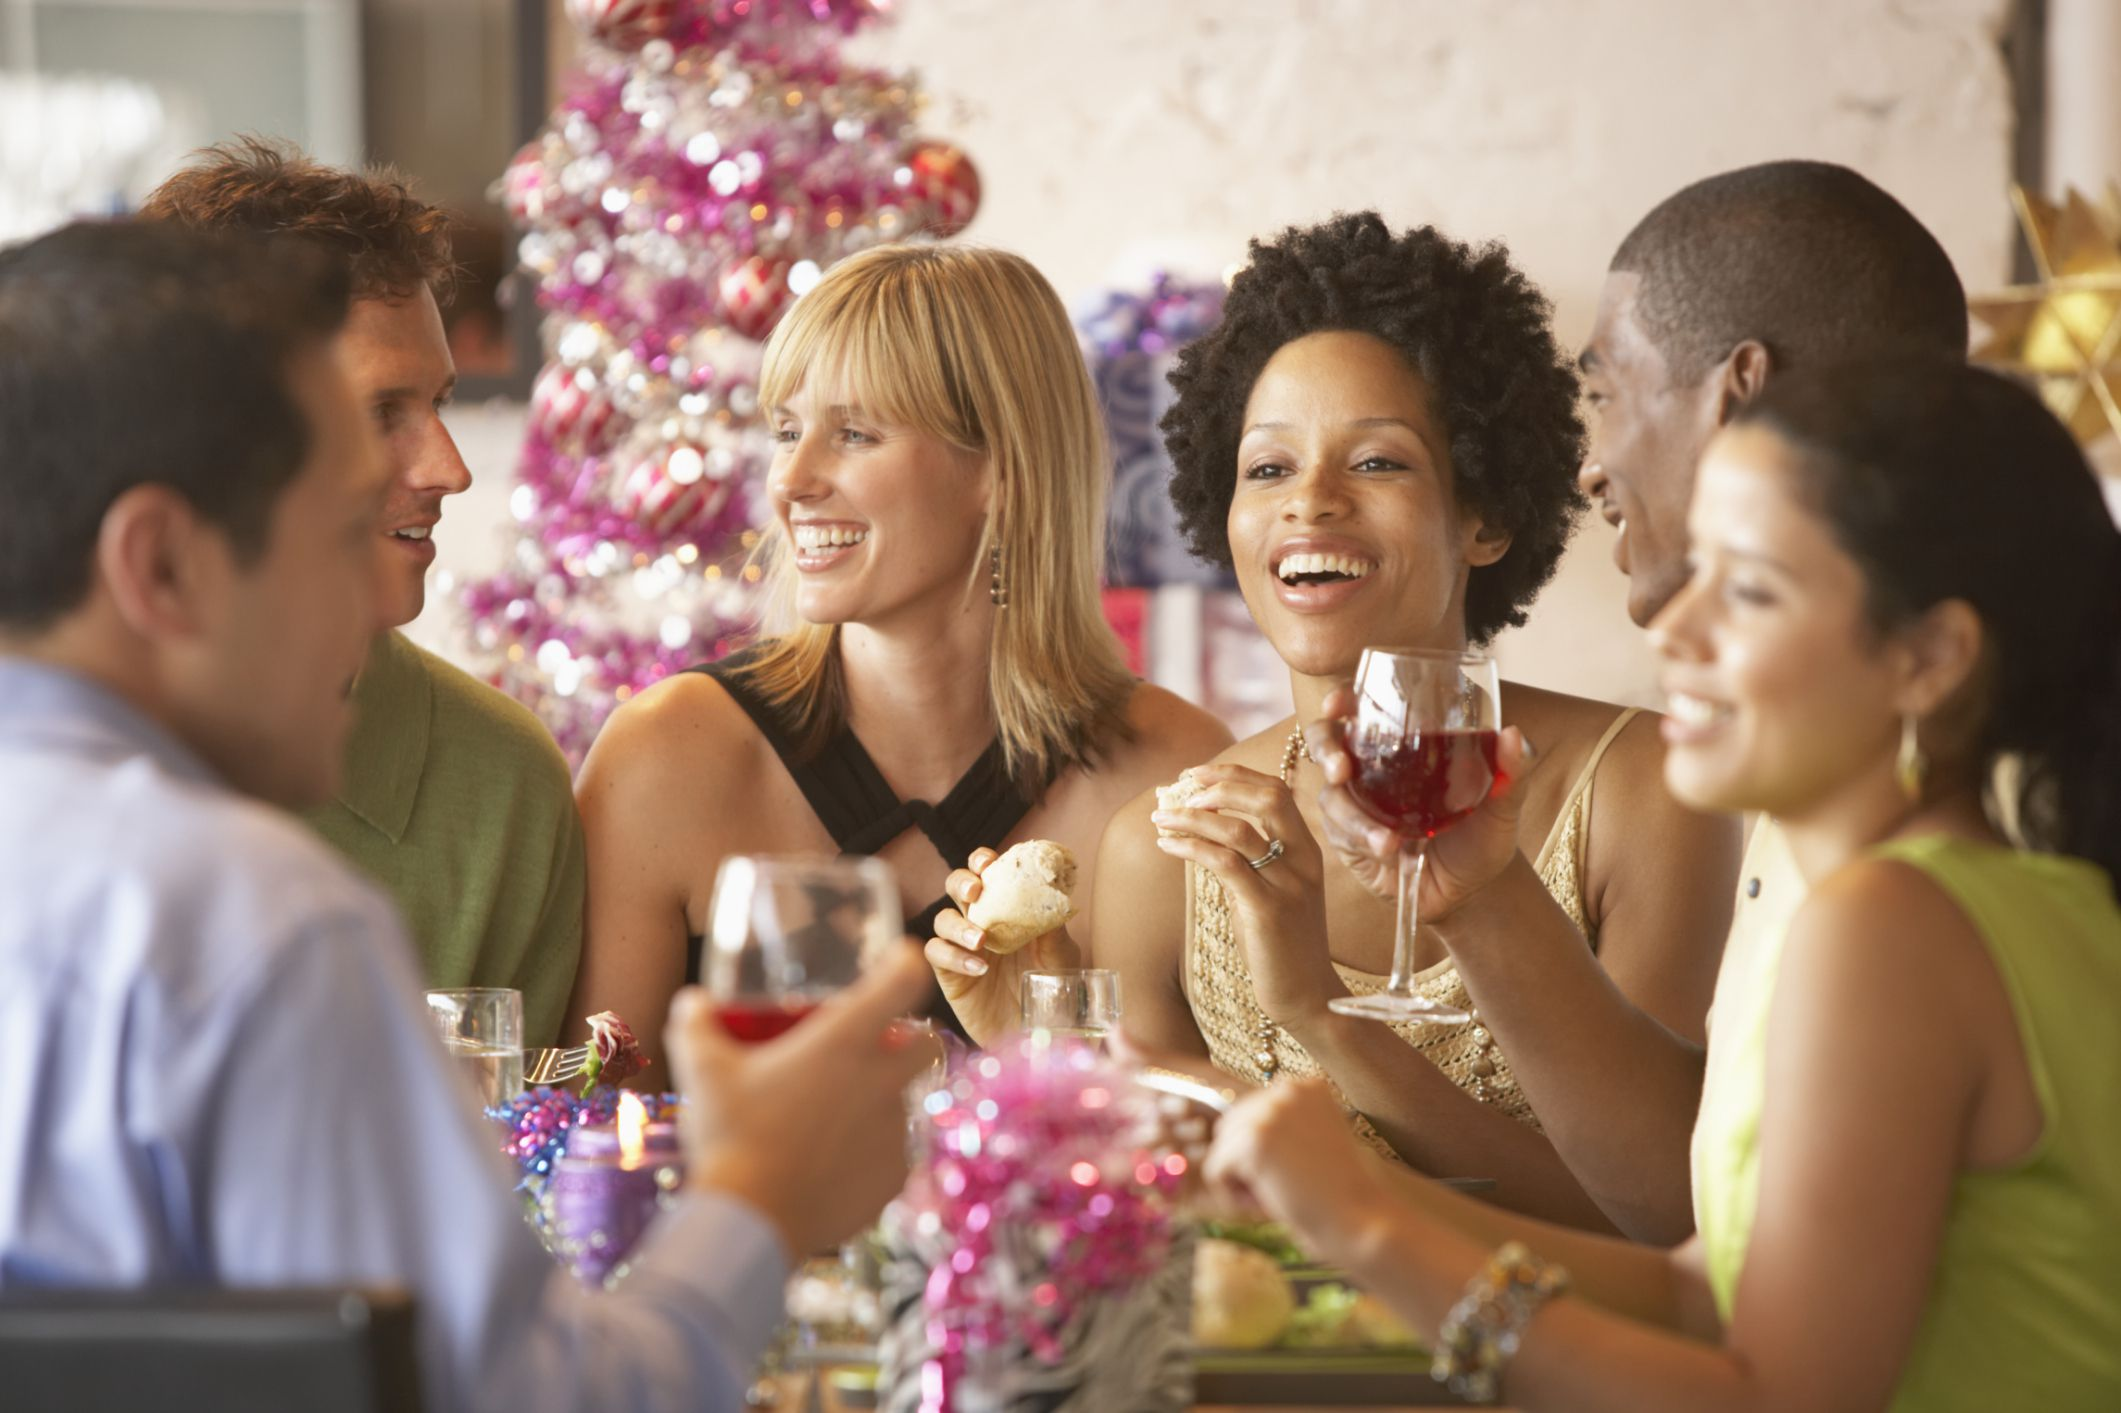 Tips for Networking at Holiday Parties